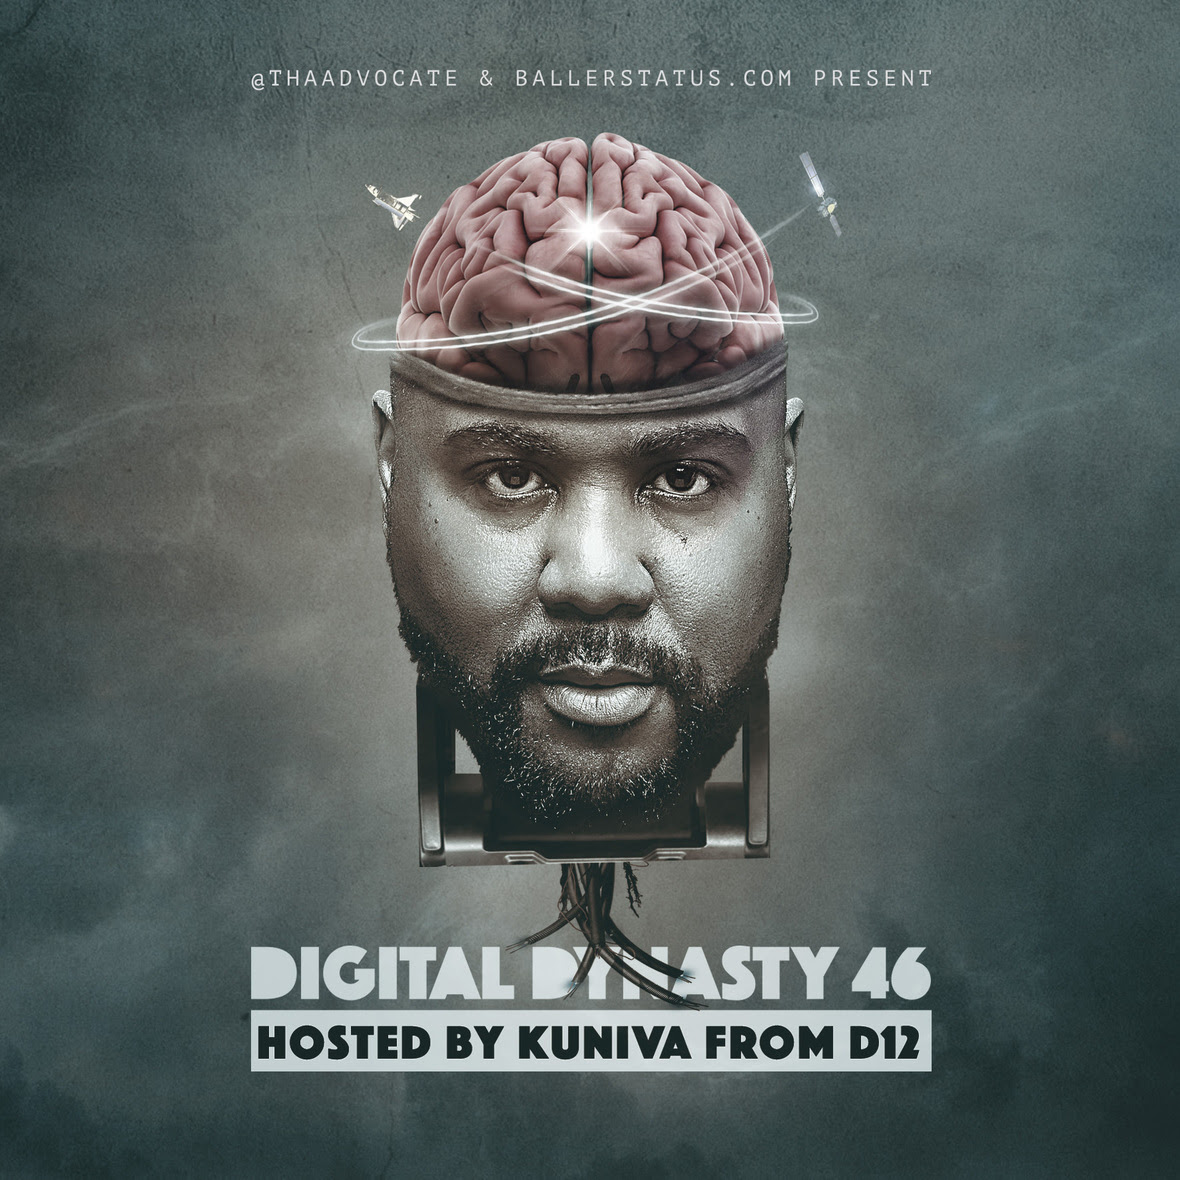 Digital Dynasty 46 (Hosted by Kuniva of D12)